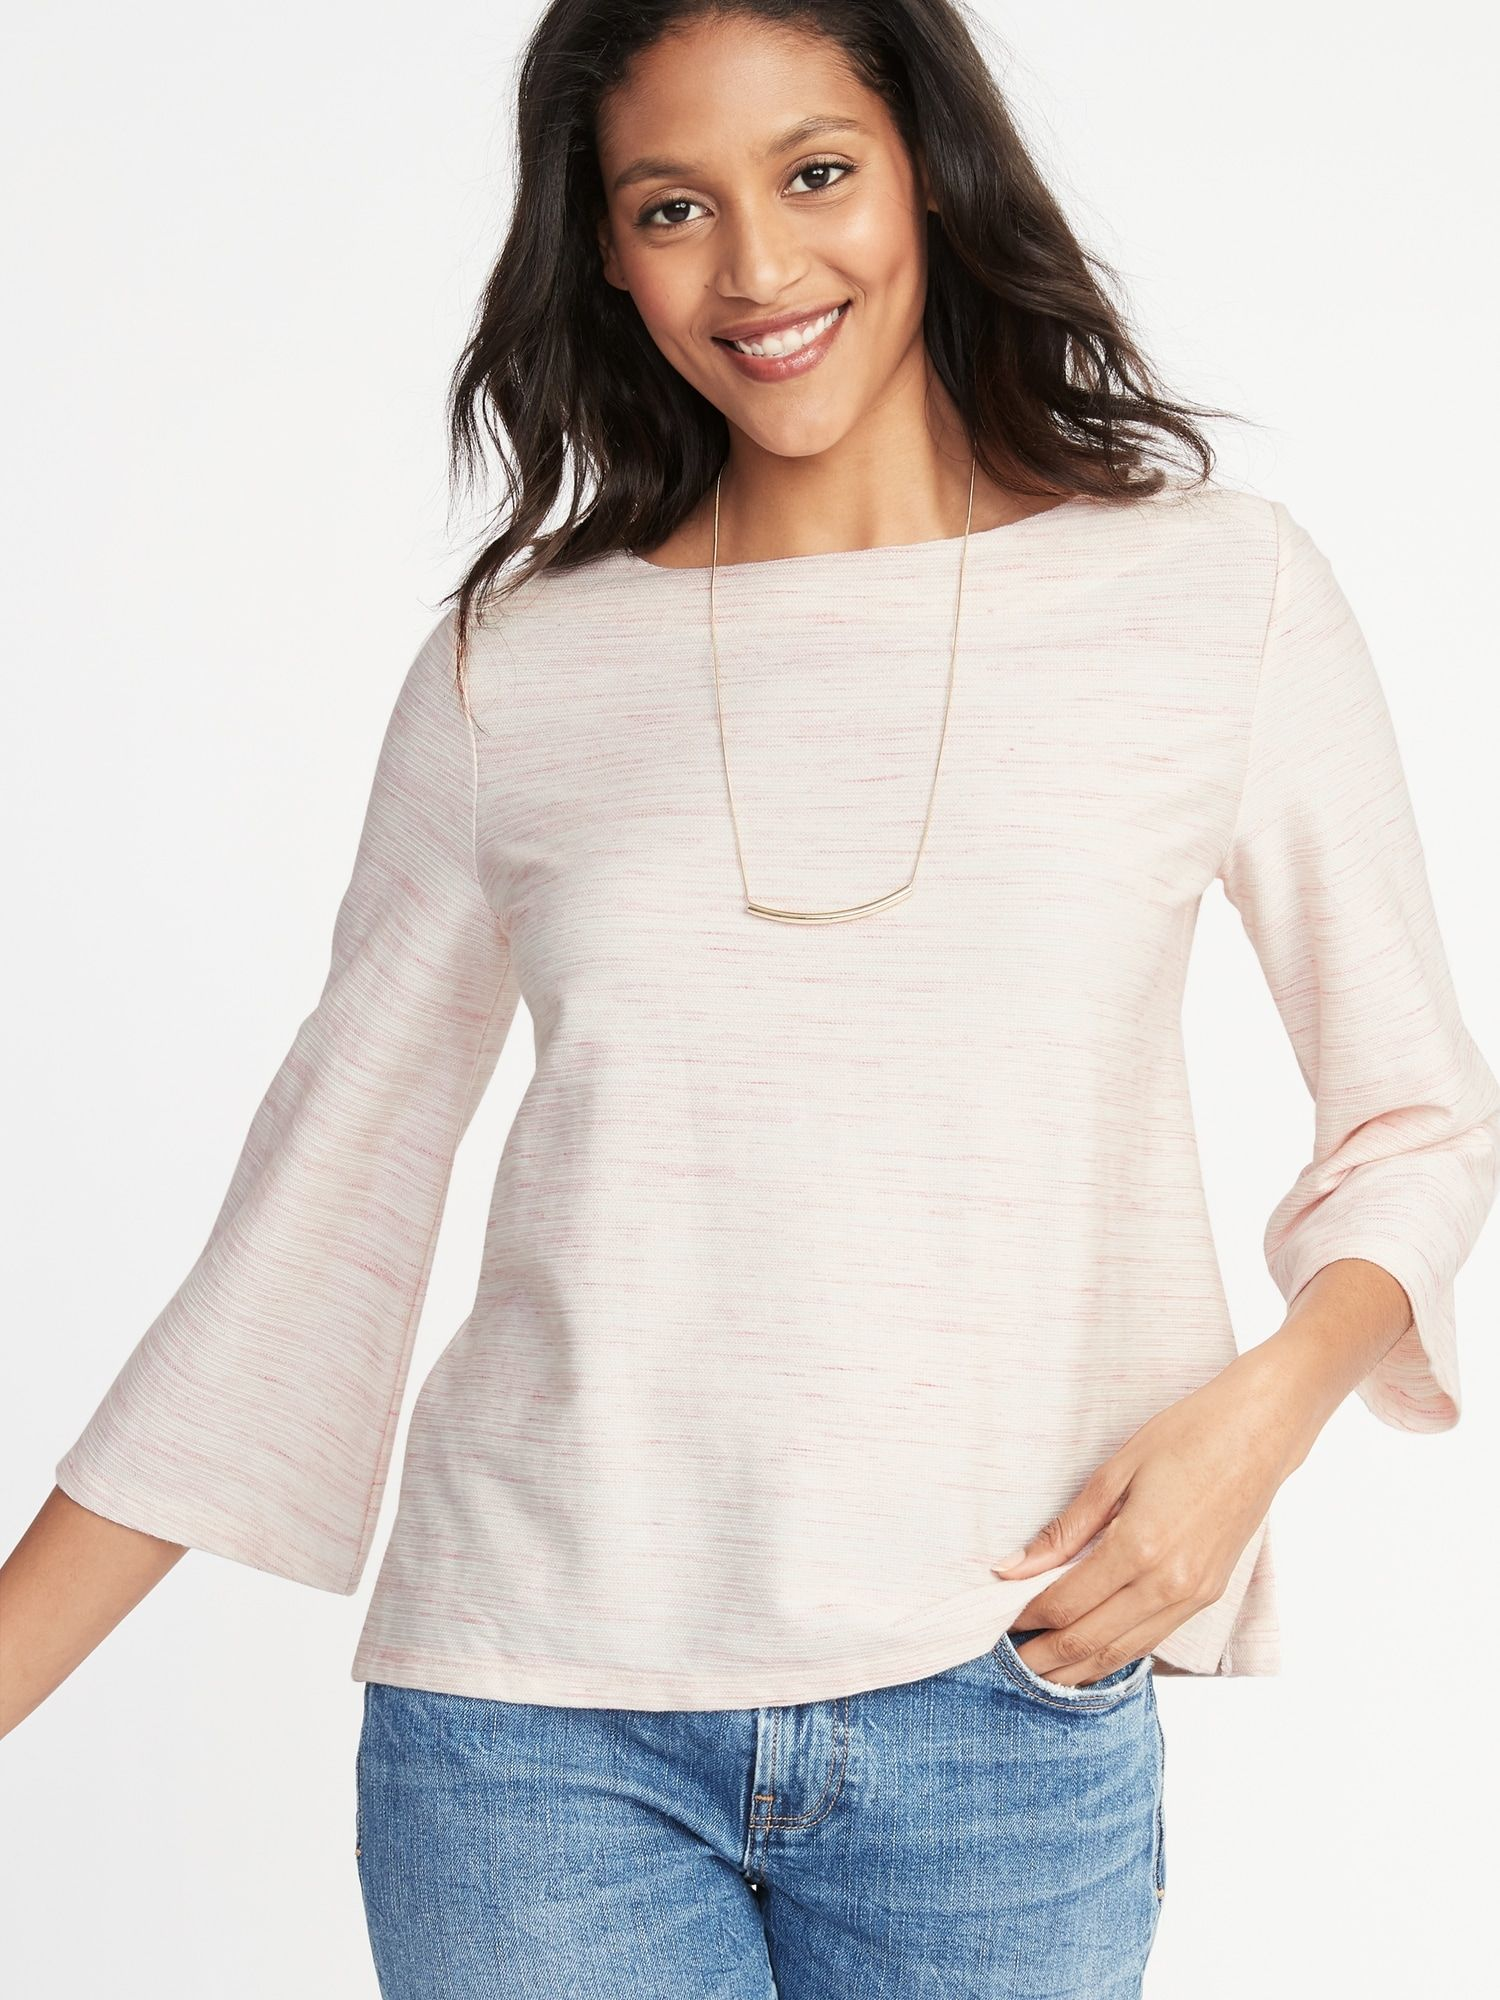 9903b22e7c84 Textured Boat-Neck Top for Women